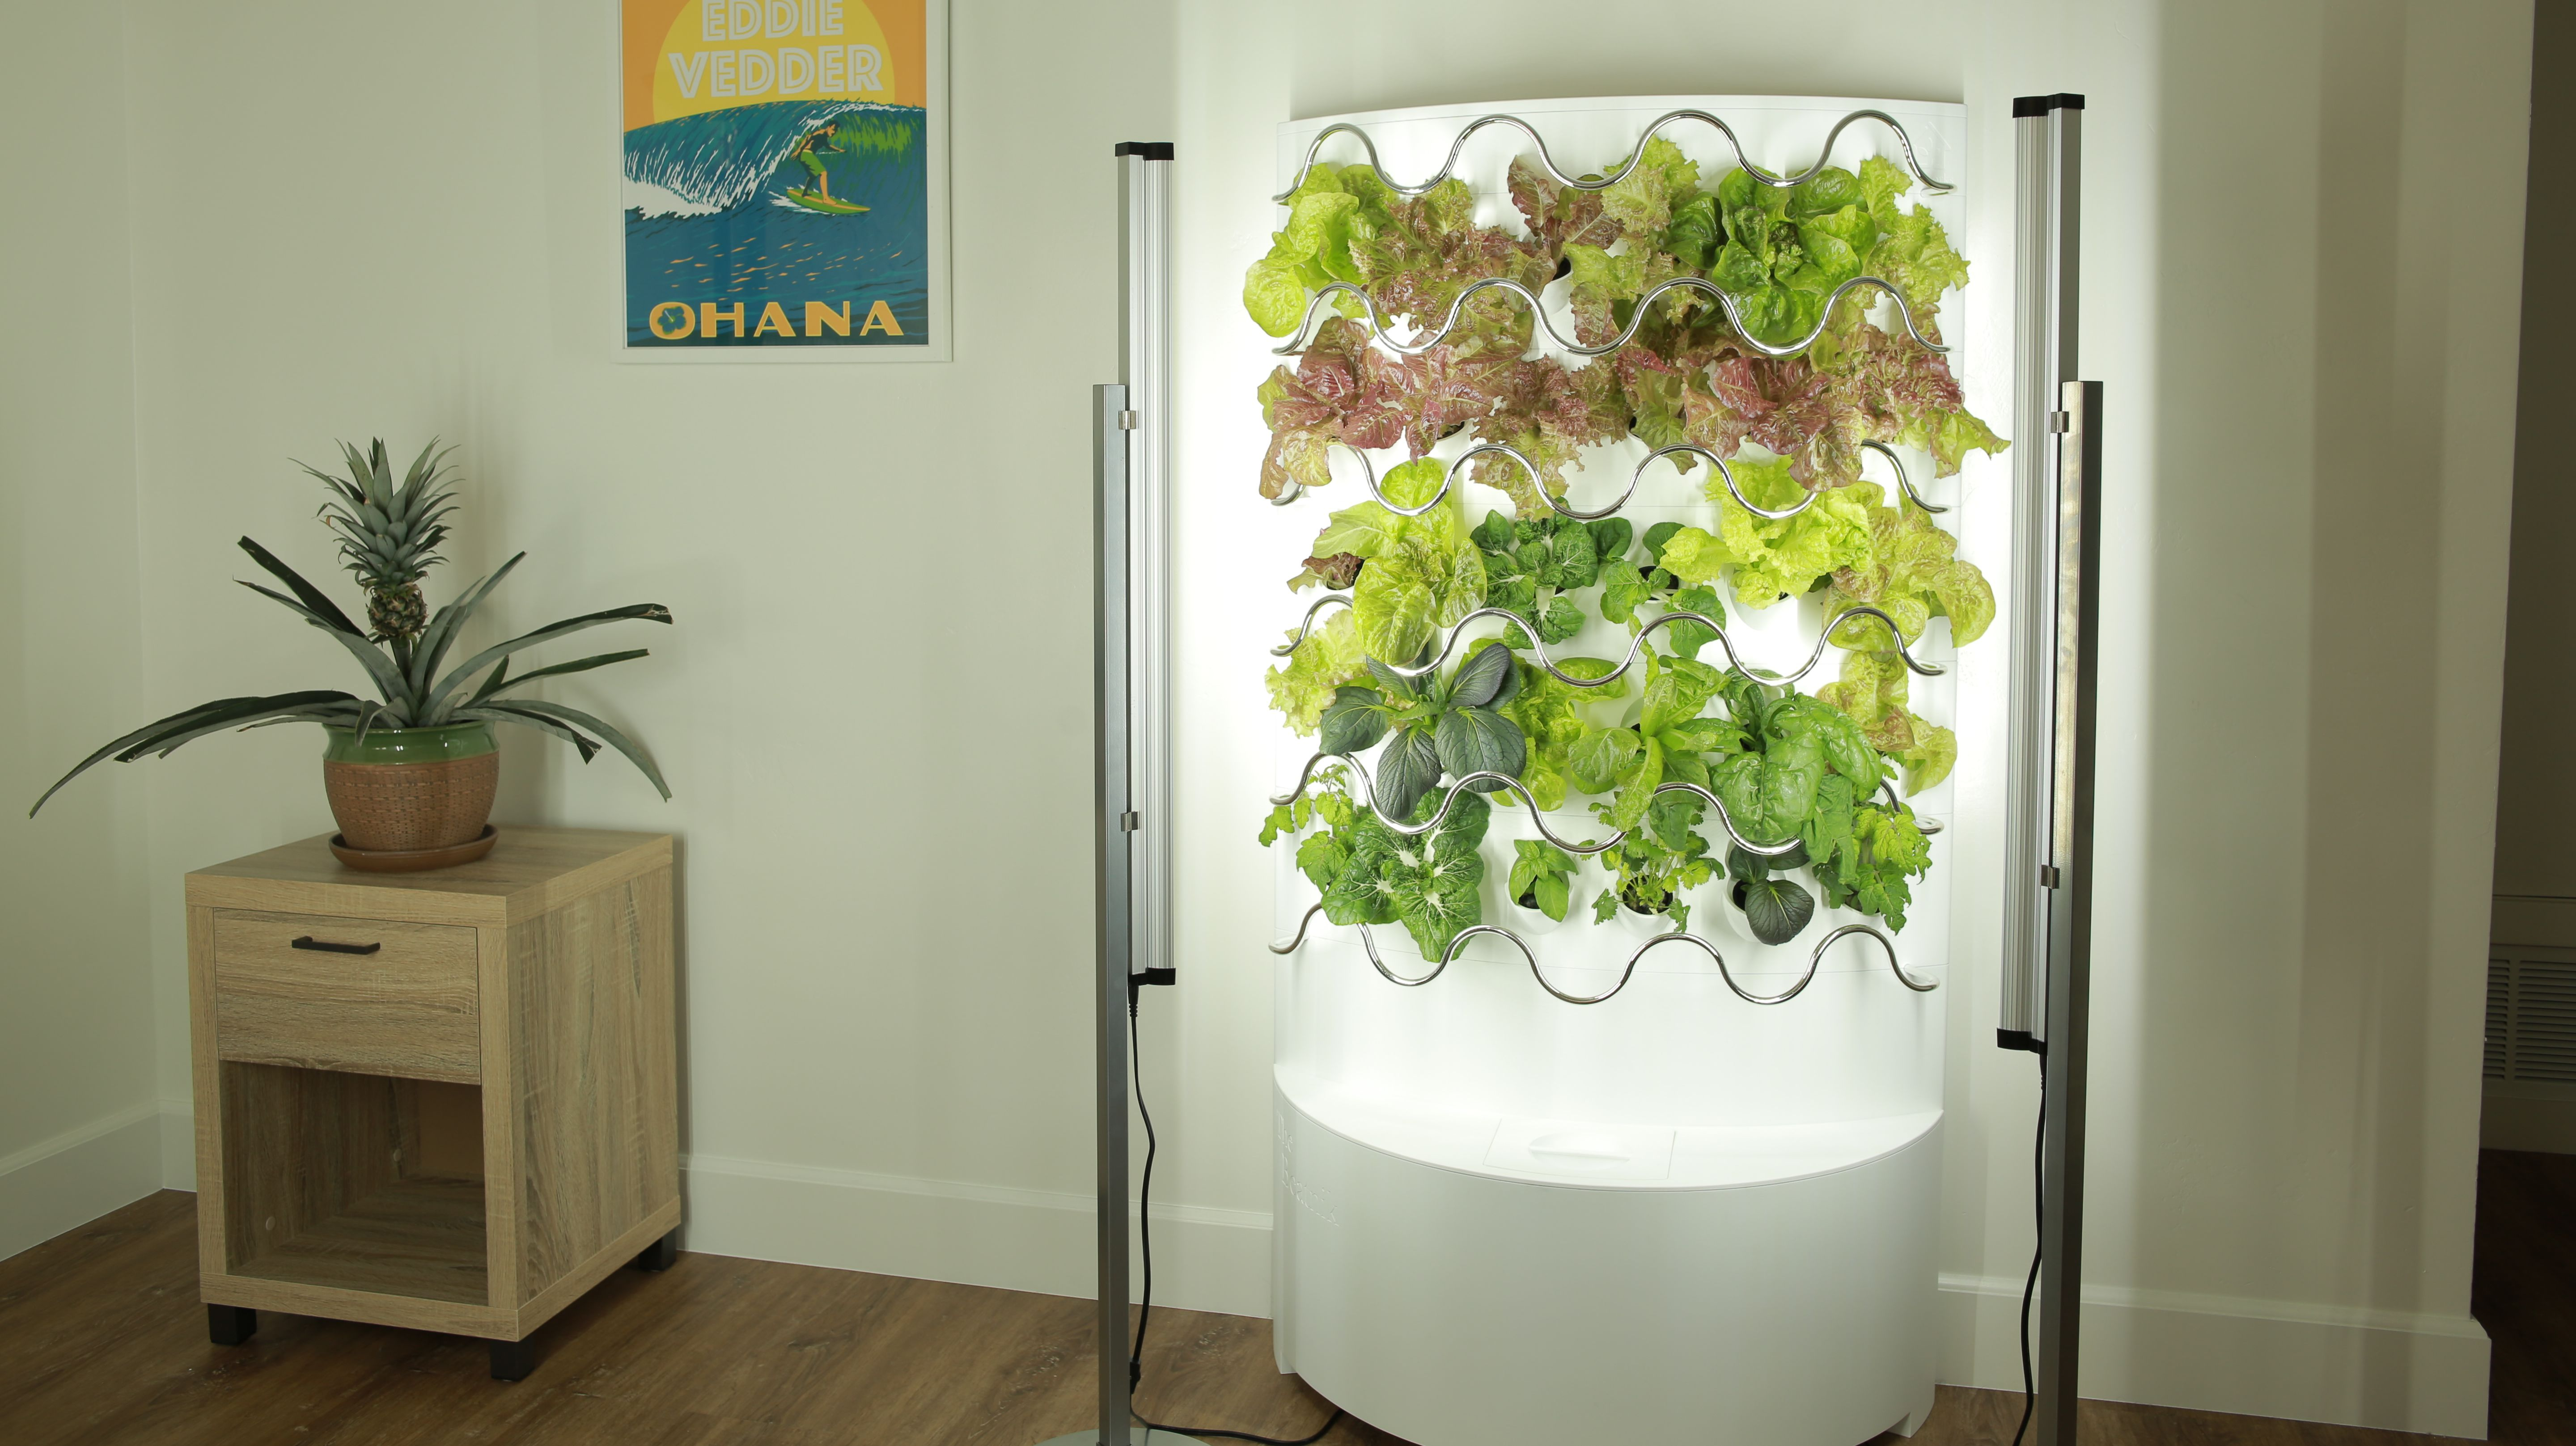 This Indoor Garden Grows Up to 30 Fruits and Vegetables With Little Maintenance Required